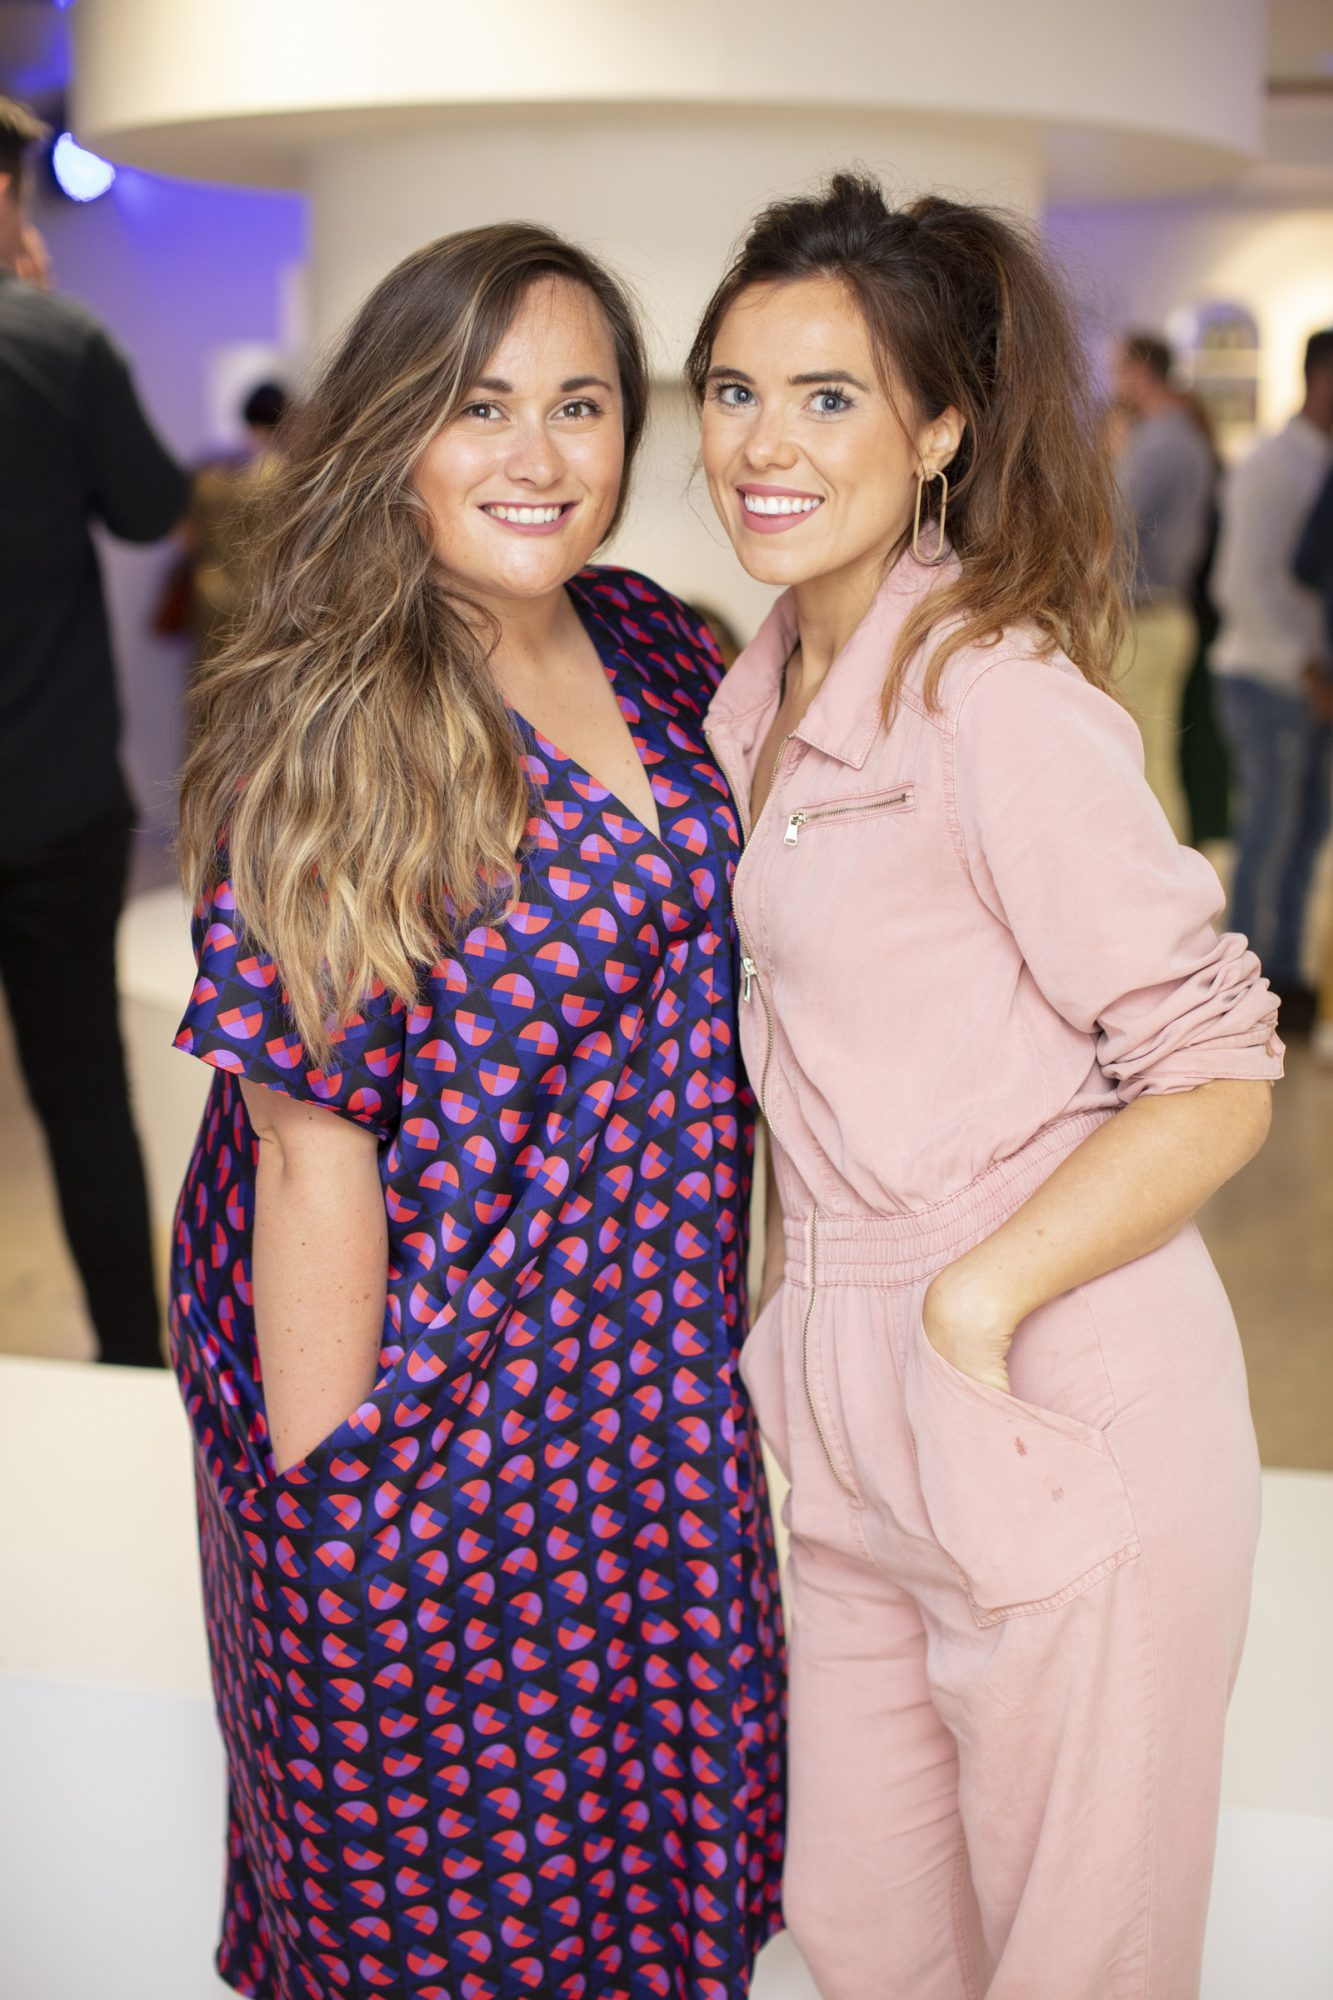 Jennifer Wilson & Lauren Small pictured at the launch of The House of Peroni, which is open at the RHA in Dublin until Sunday, 1st September 2019. This year's residency sees the RHA transformed into a stylish Peroni inspired experience, filled with food, drink and design. www.thehouseofperoni.com Photo: Anthony Woods.